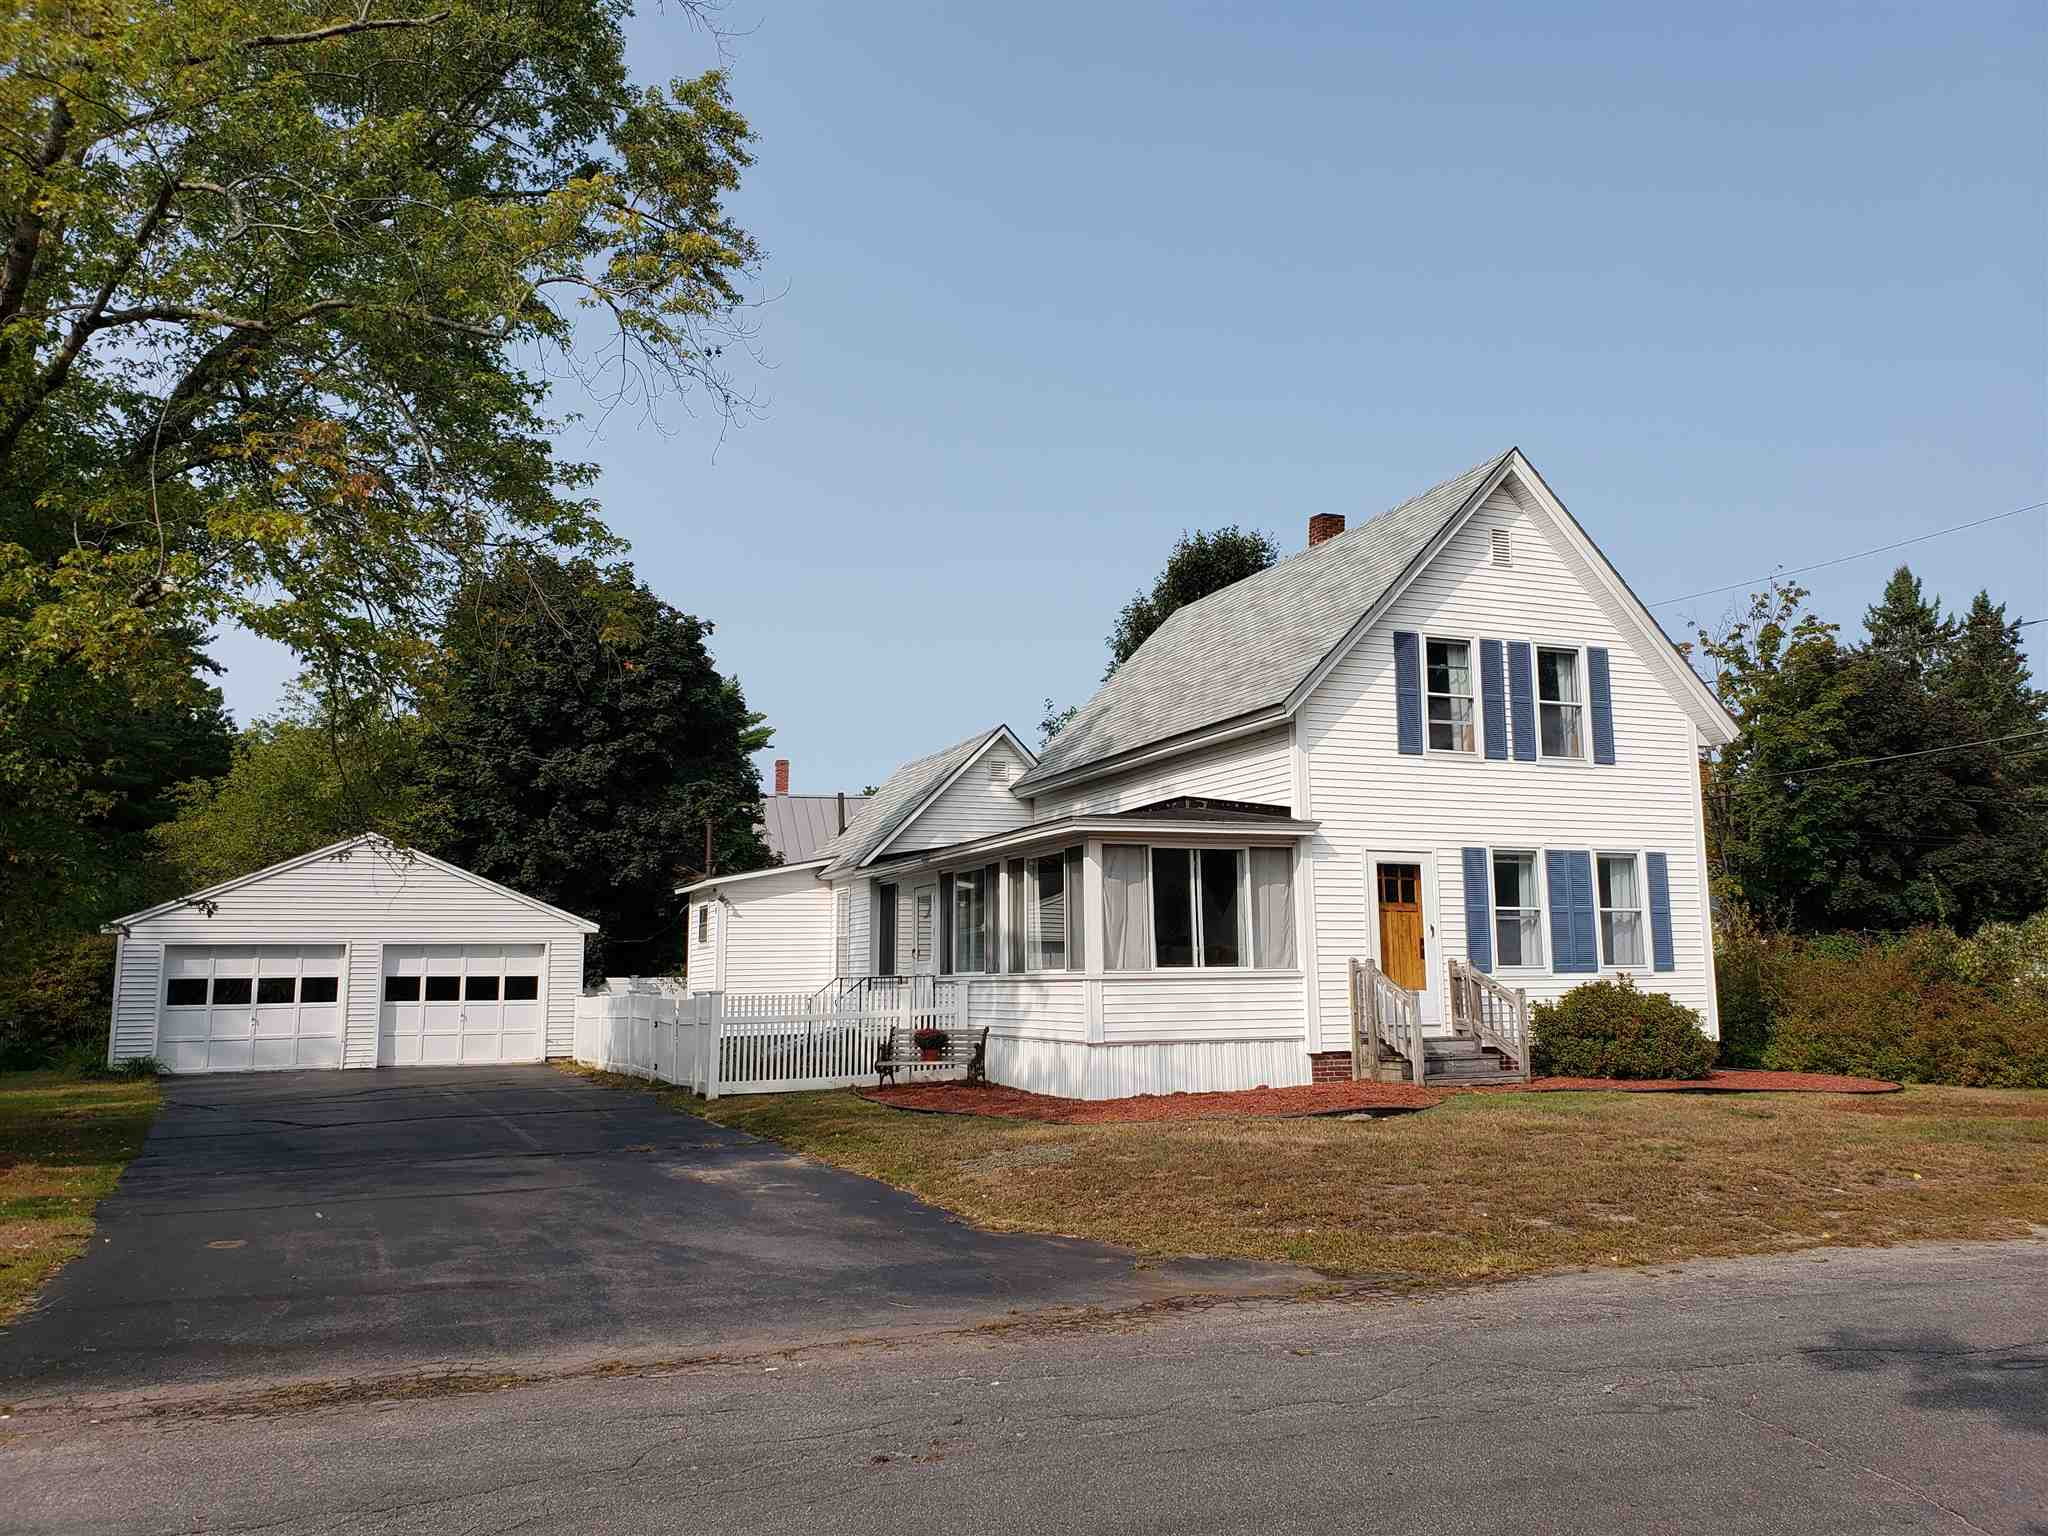 Photo of 82 Lilac Street Concord NH 03303-1893